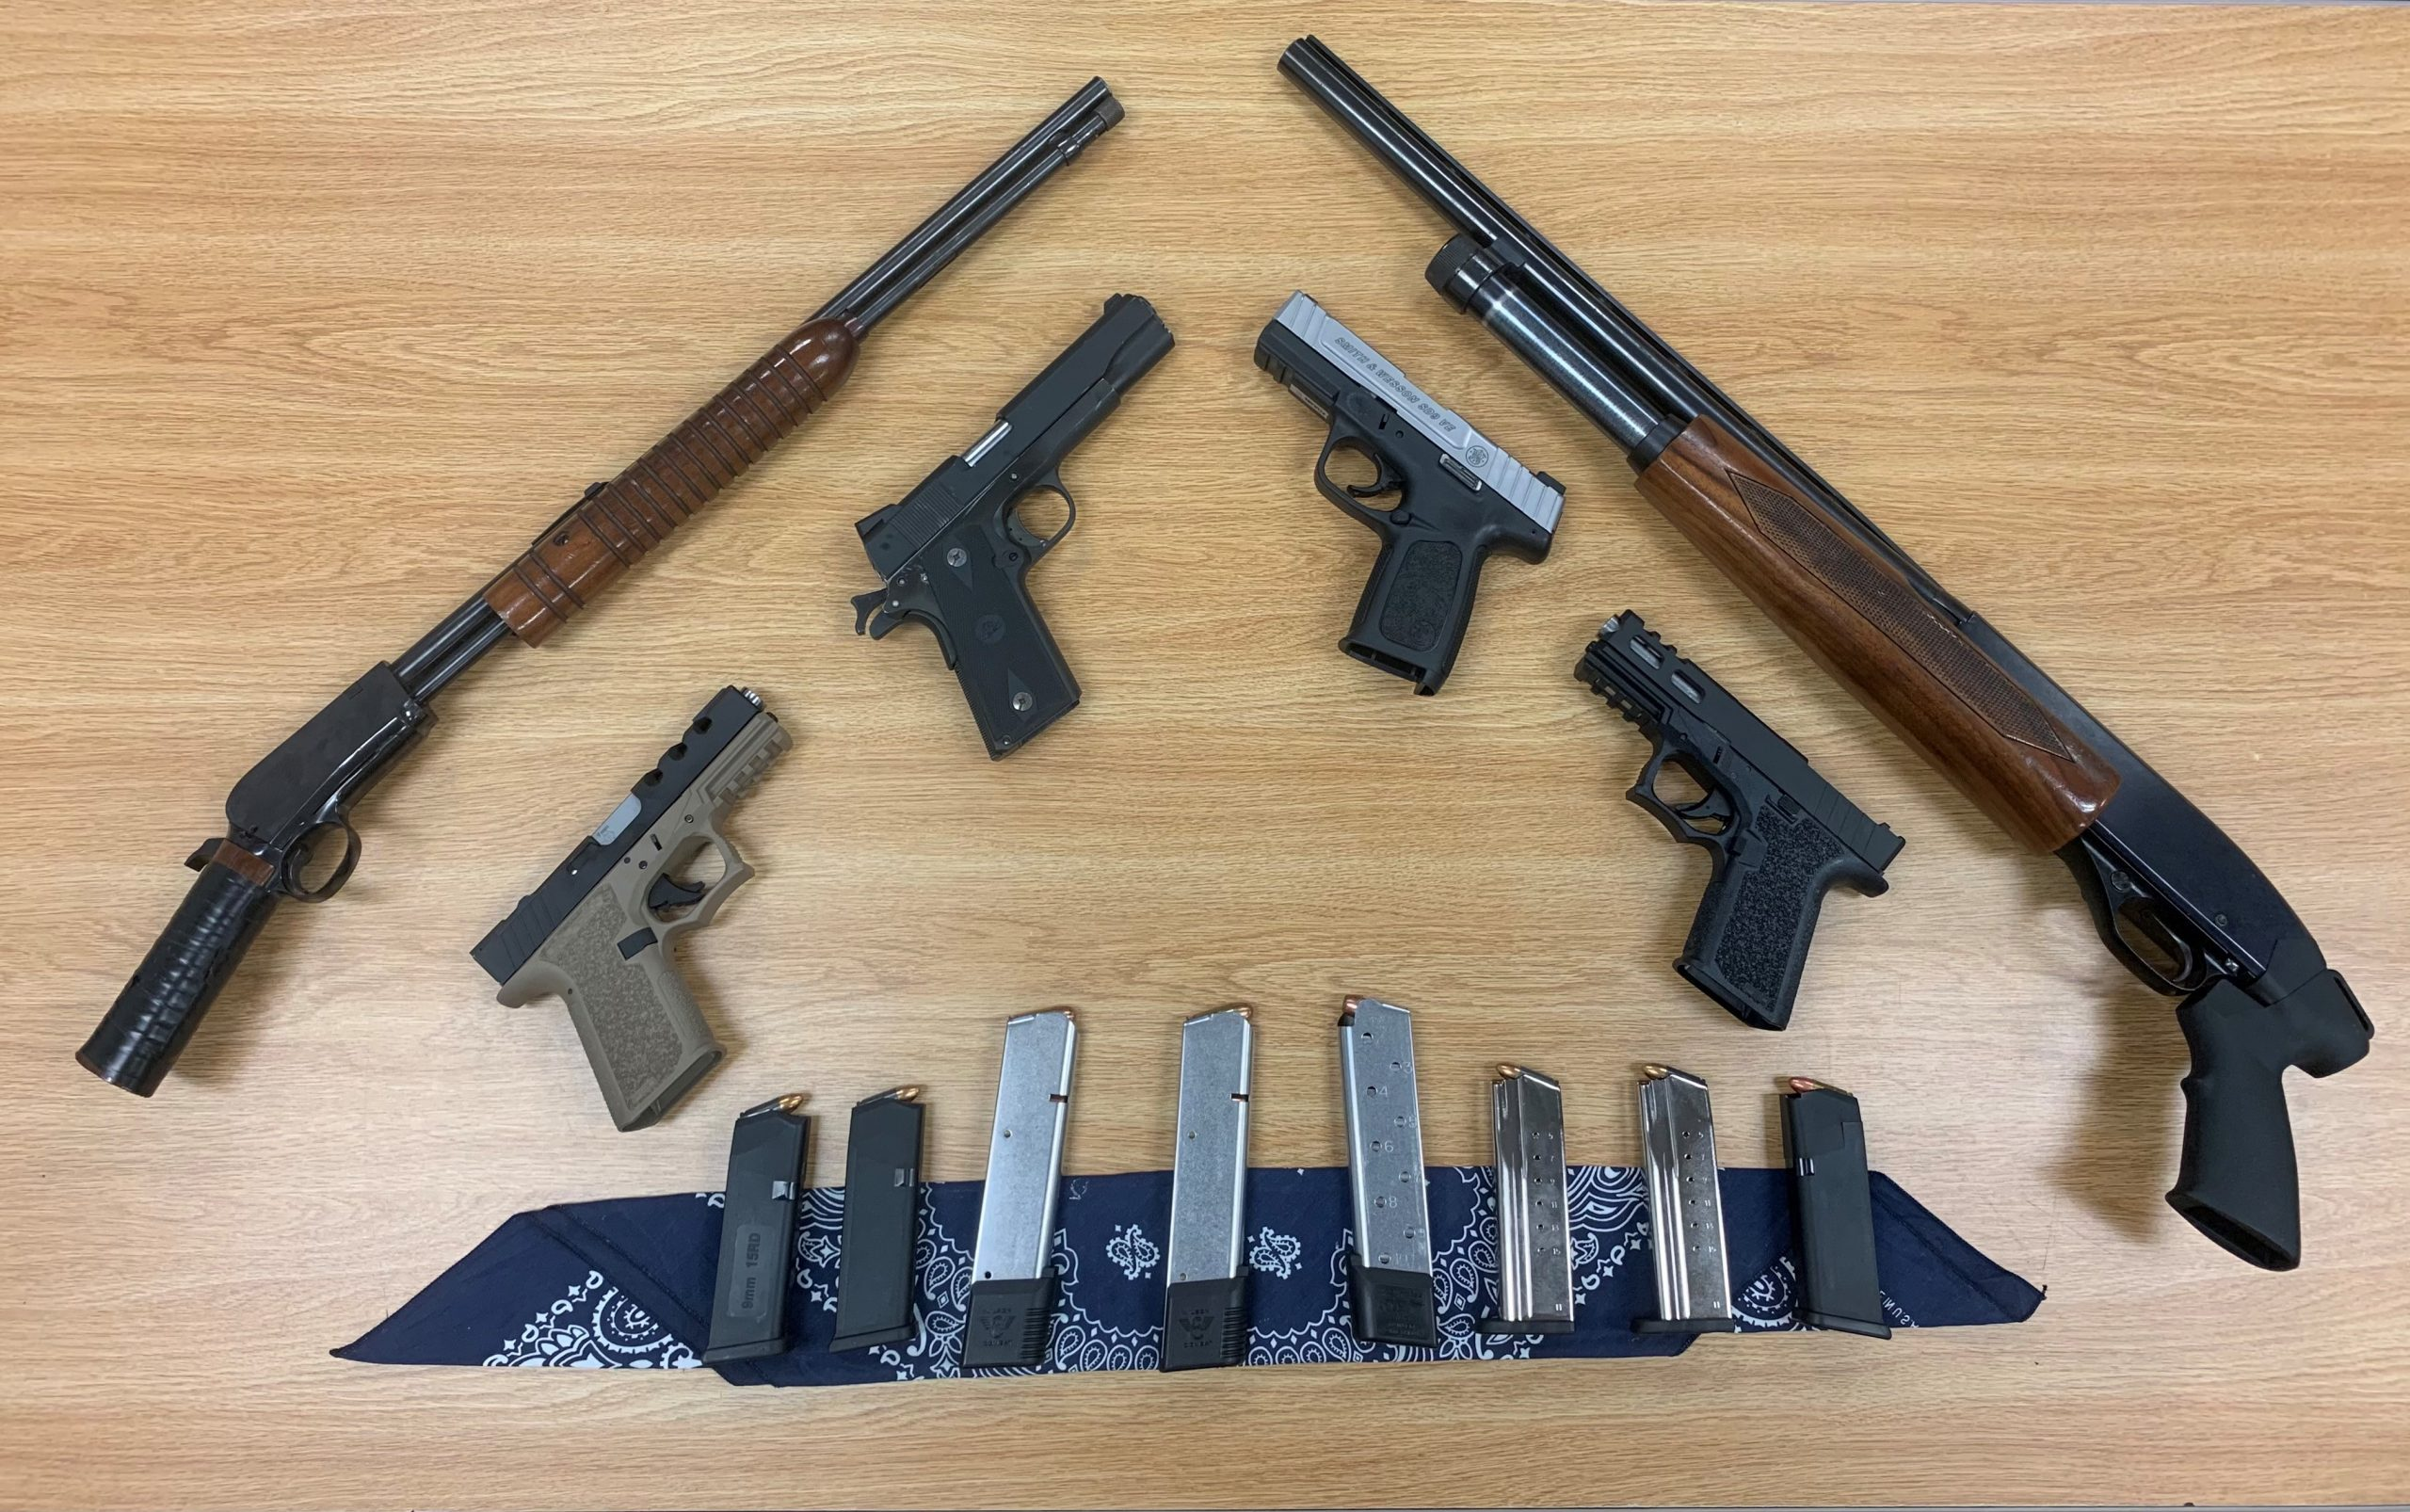 Two Oxnard men face possible illegal gun charges after law enforcement recovered multiple firearms from their homes